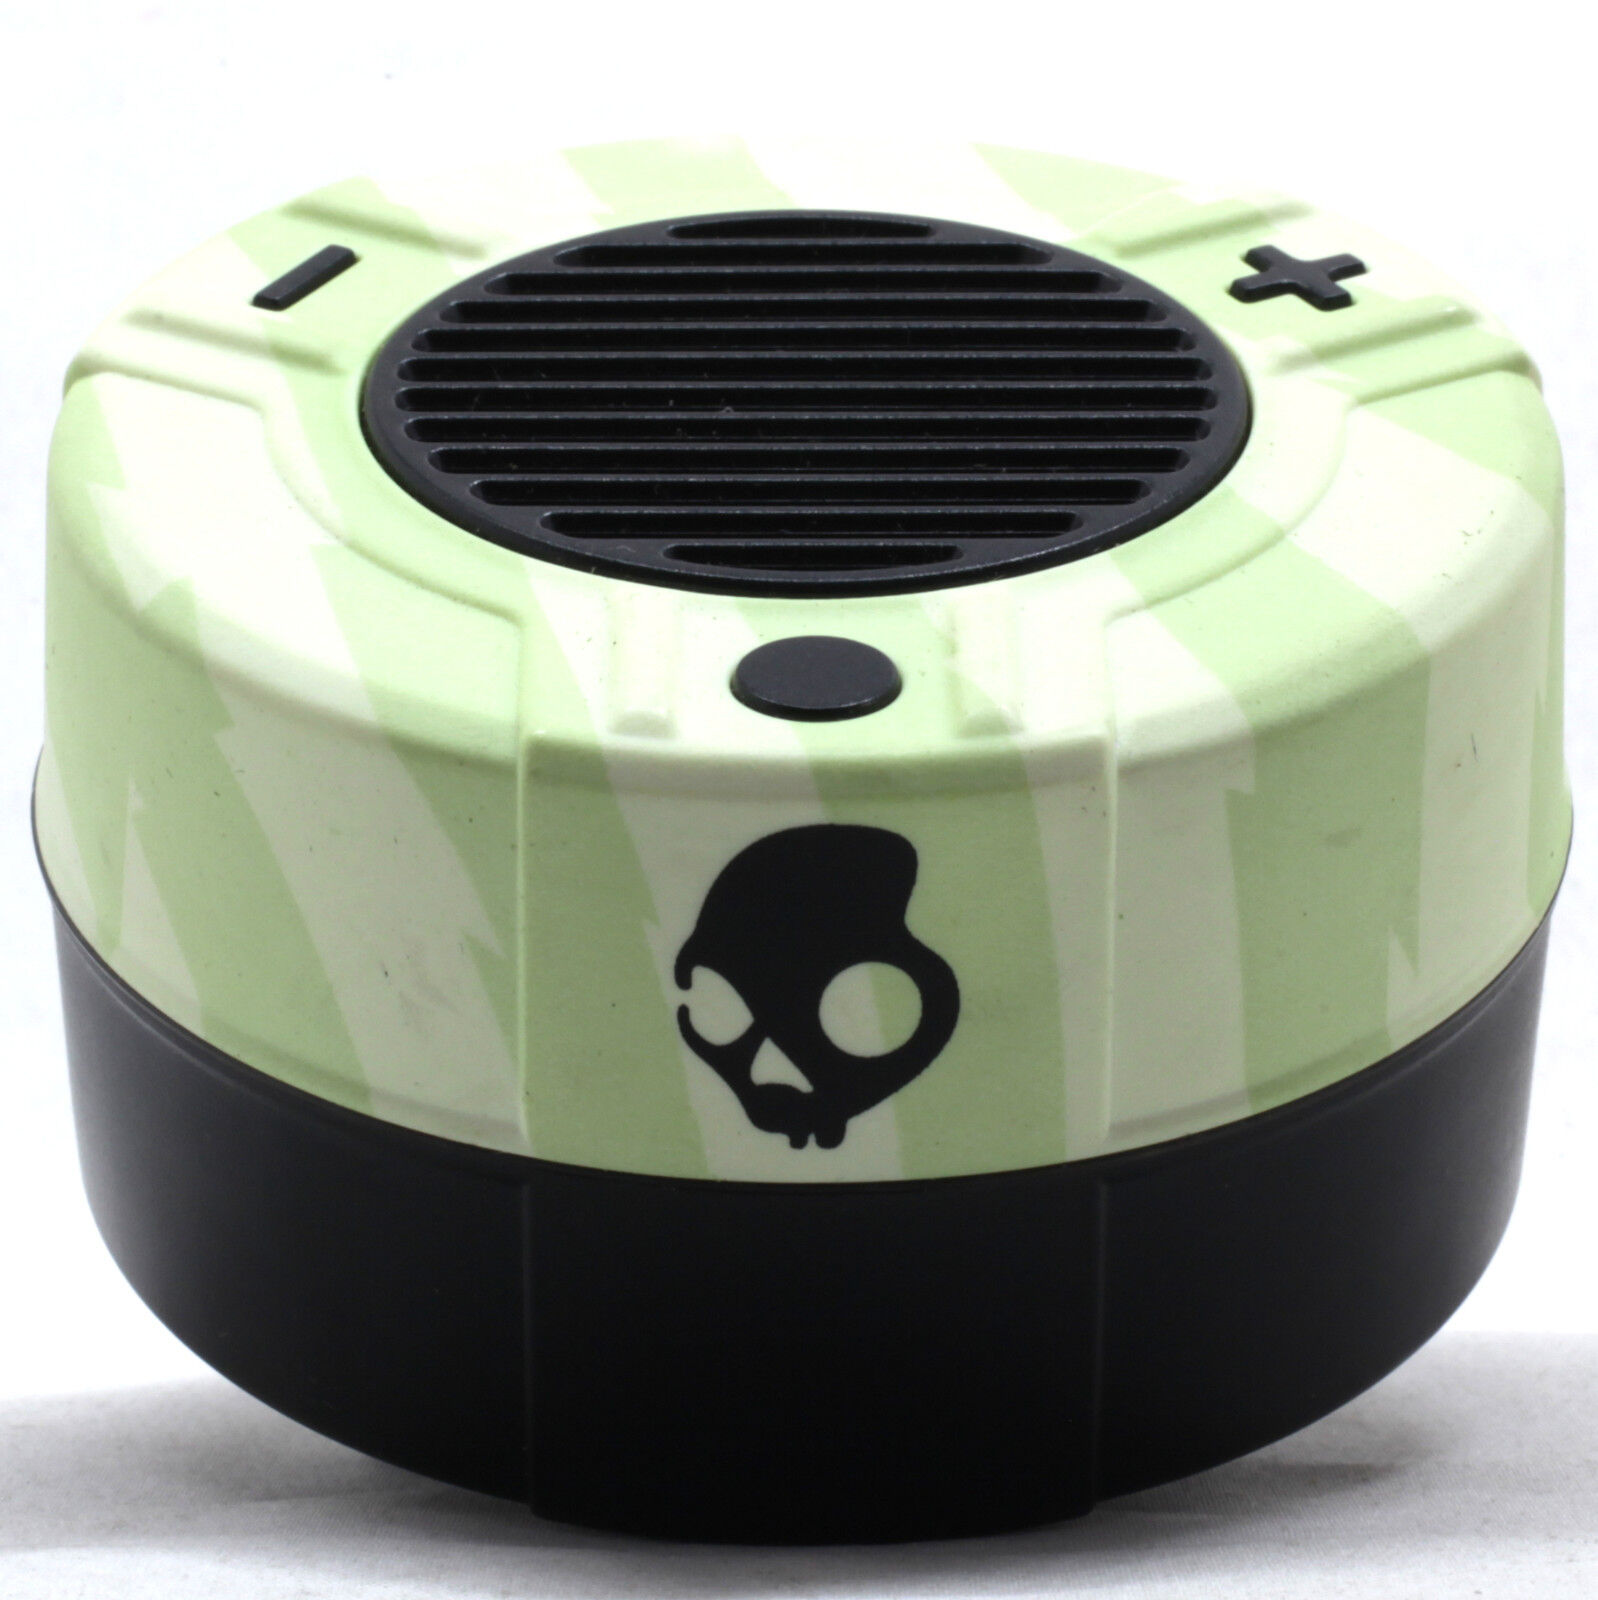 New Skullcandy Soundmine Wireless Bluetooth Speaker Portable Rechargeable black